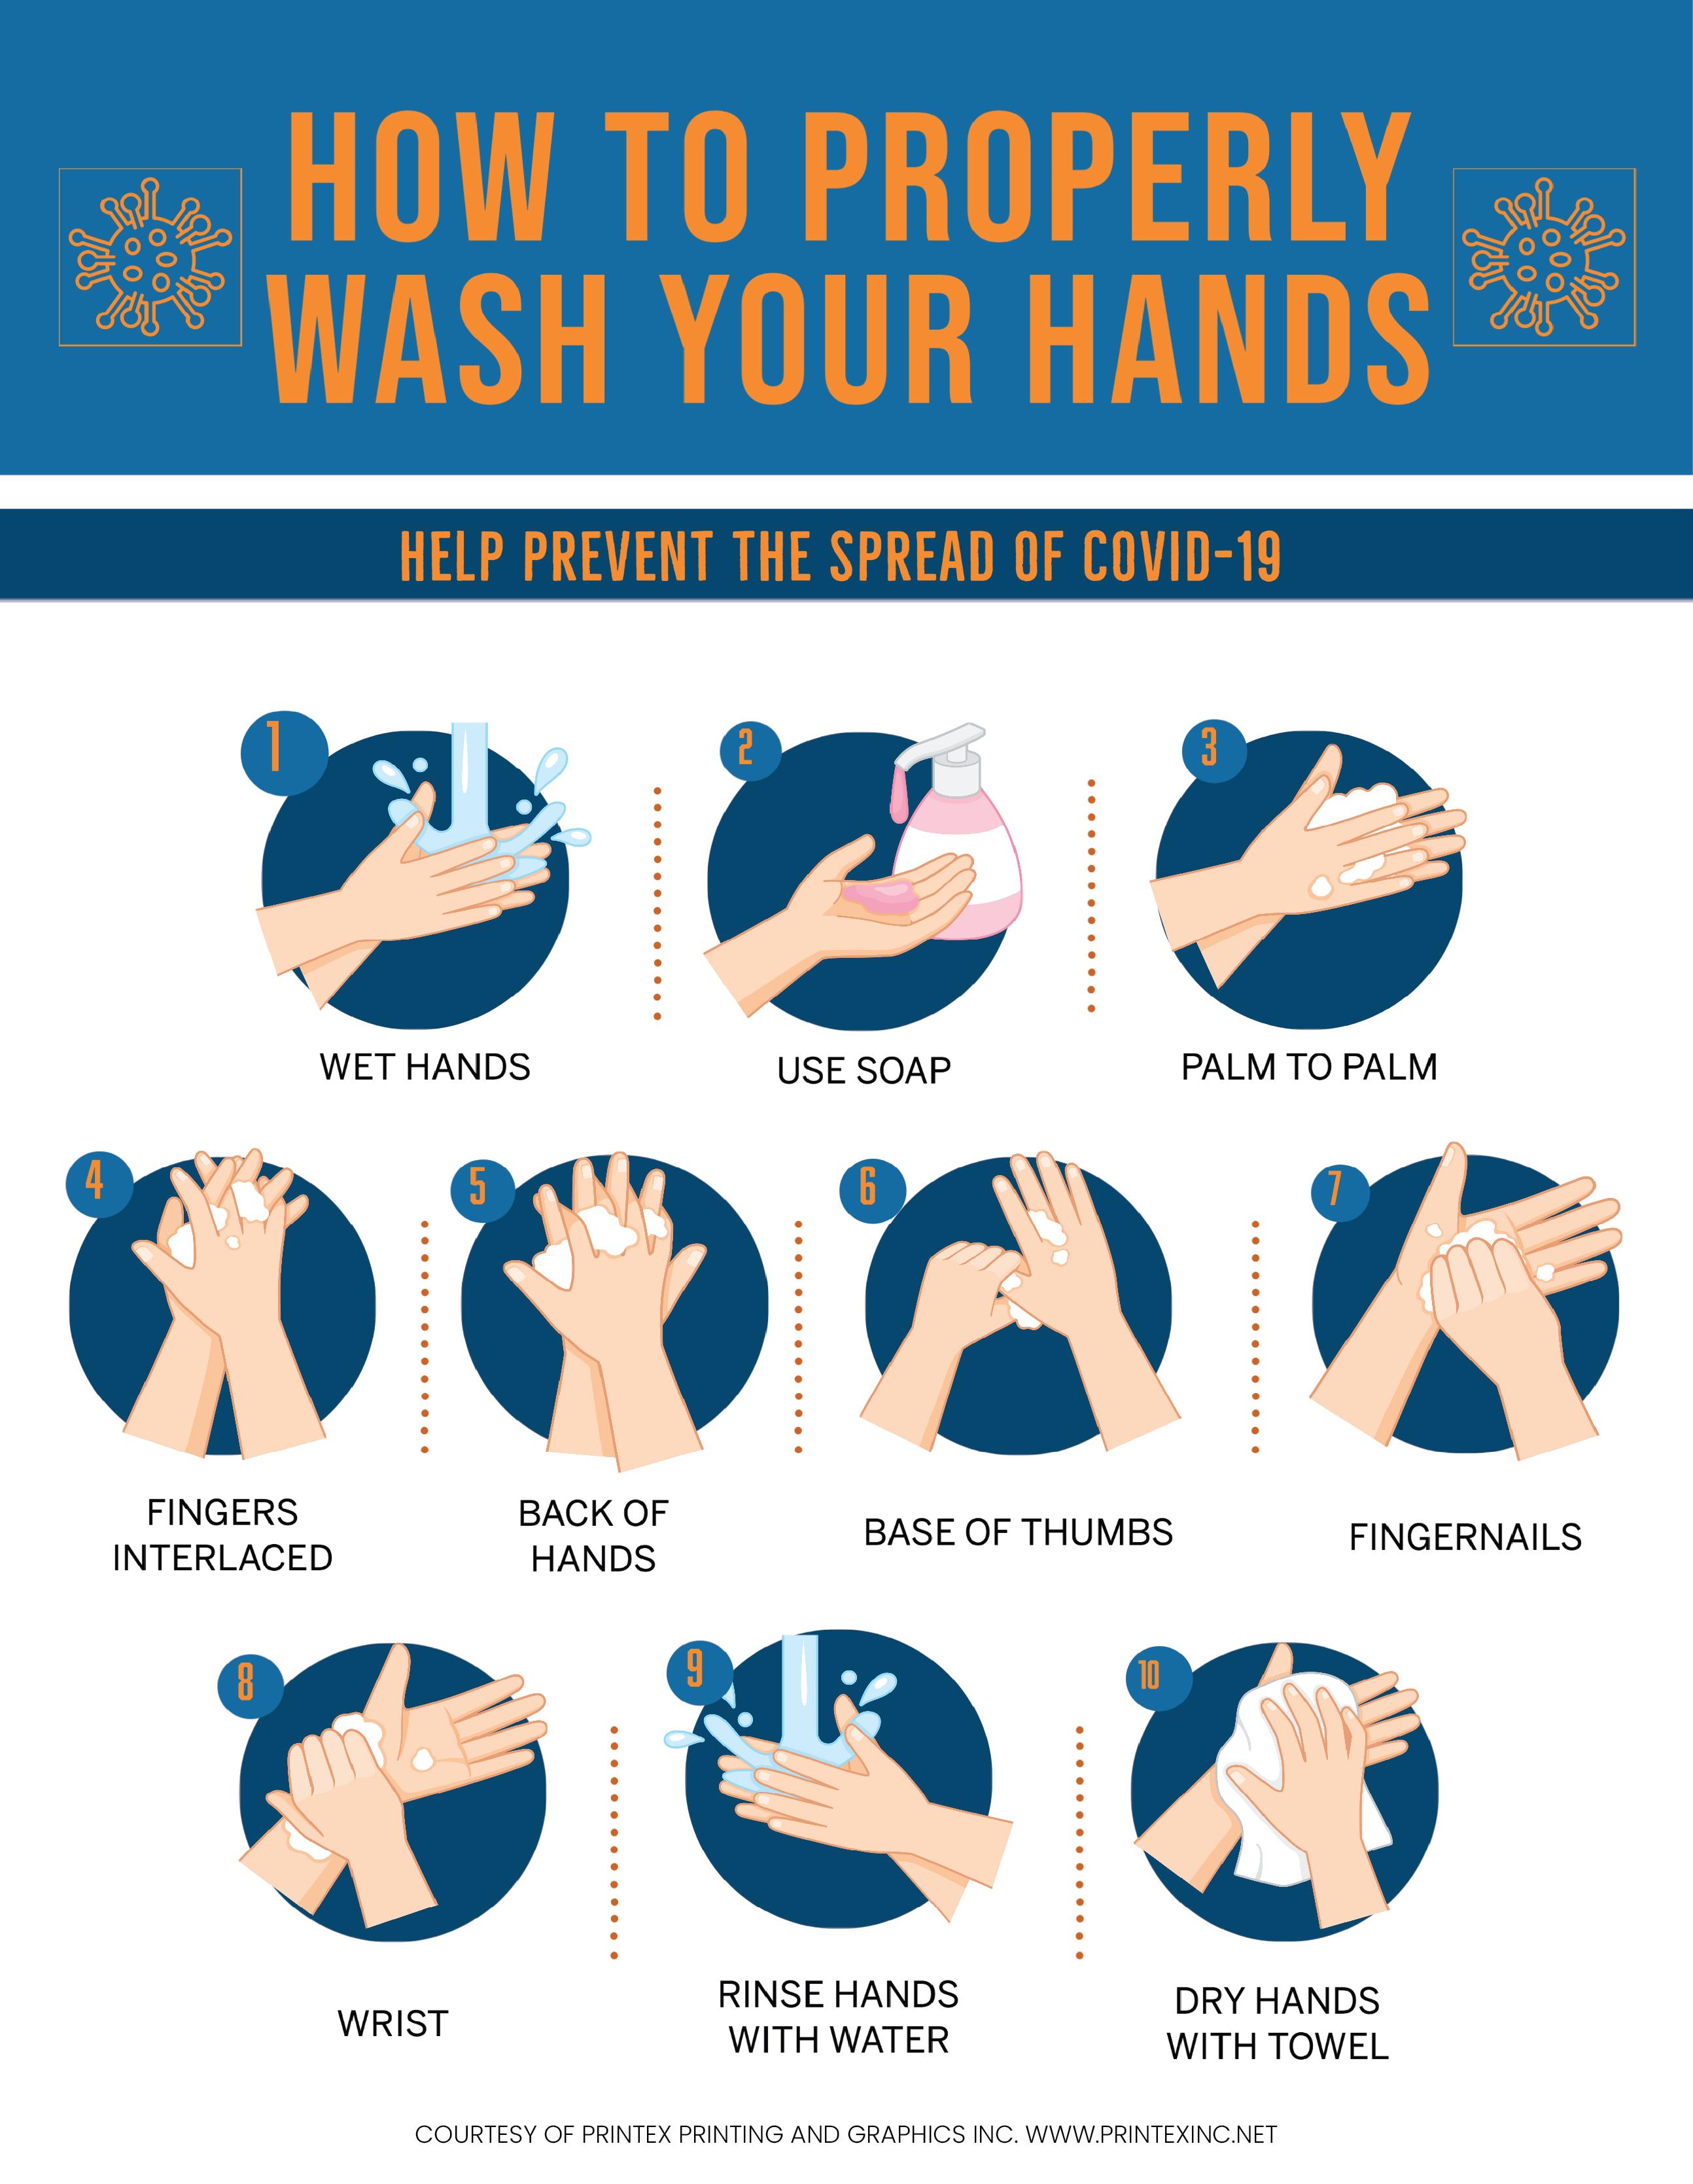 How To Wash Your Hands To Prevent Covid-19 Spread